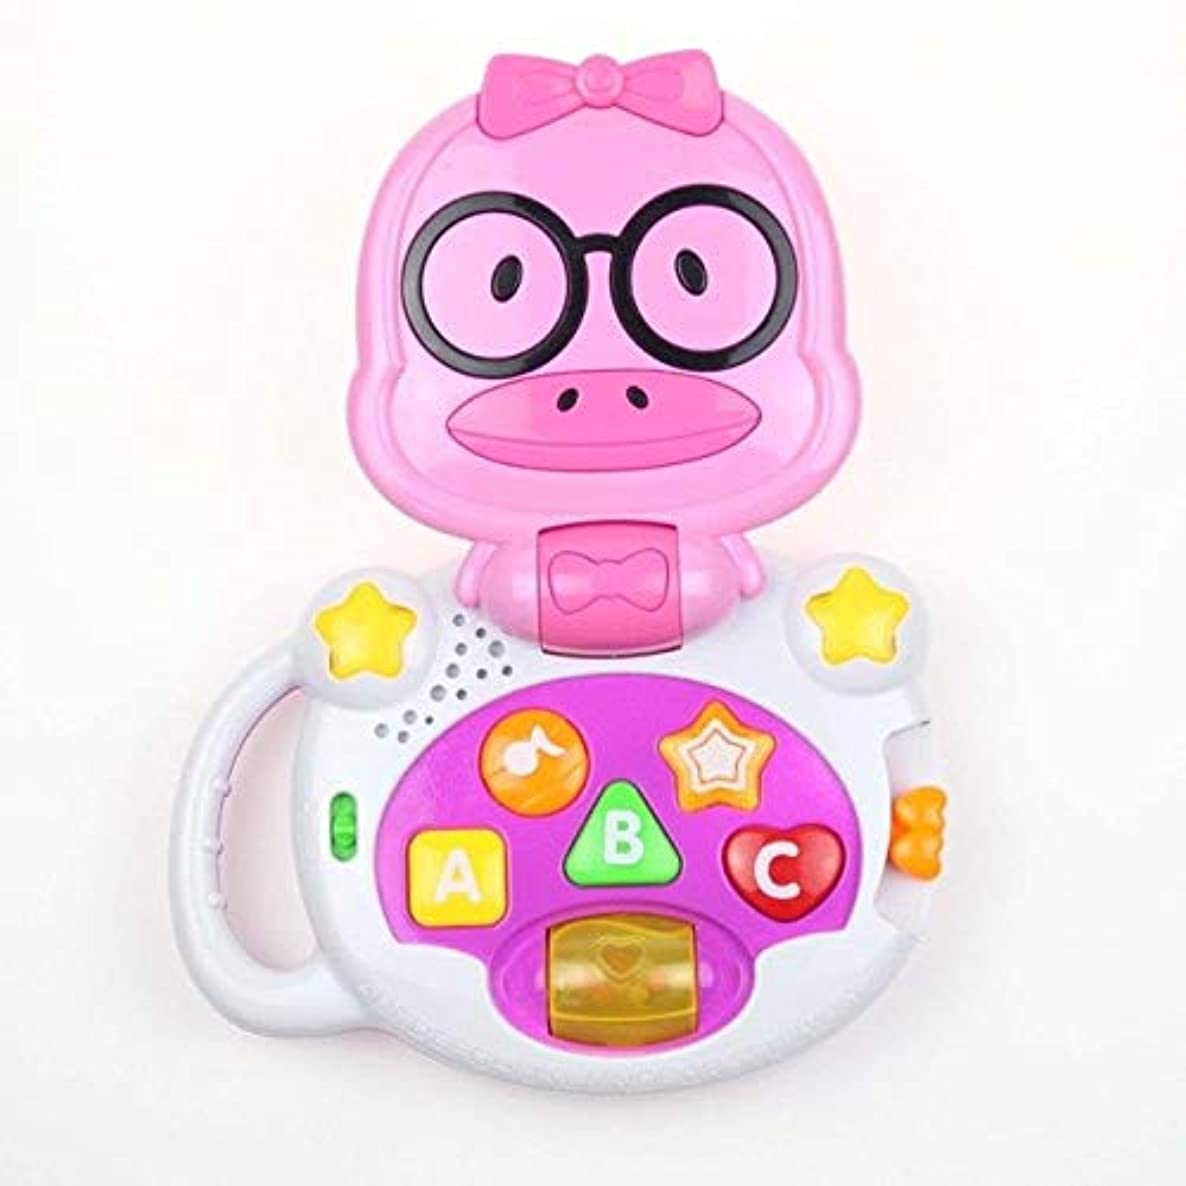 XuBa Baby Music Toys Baby Toys Rattles Cartoon Light Musical Toys for Babies Oyuncak Brinquedos para Bebe Pink